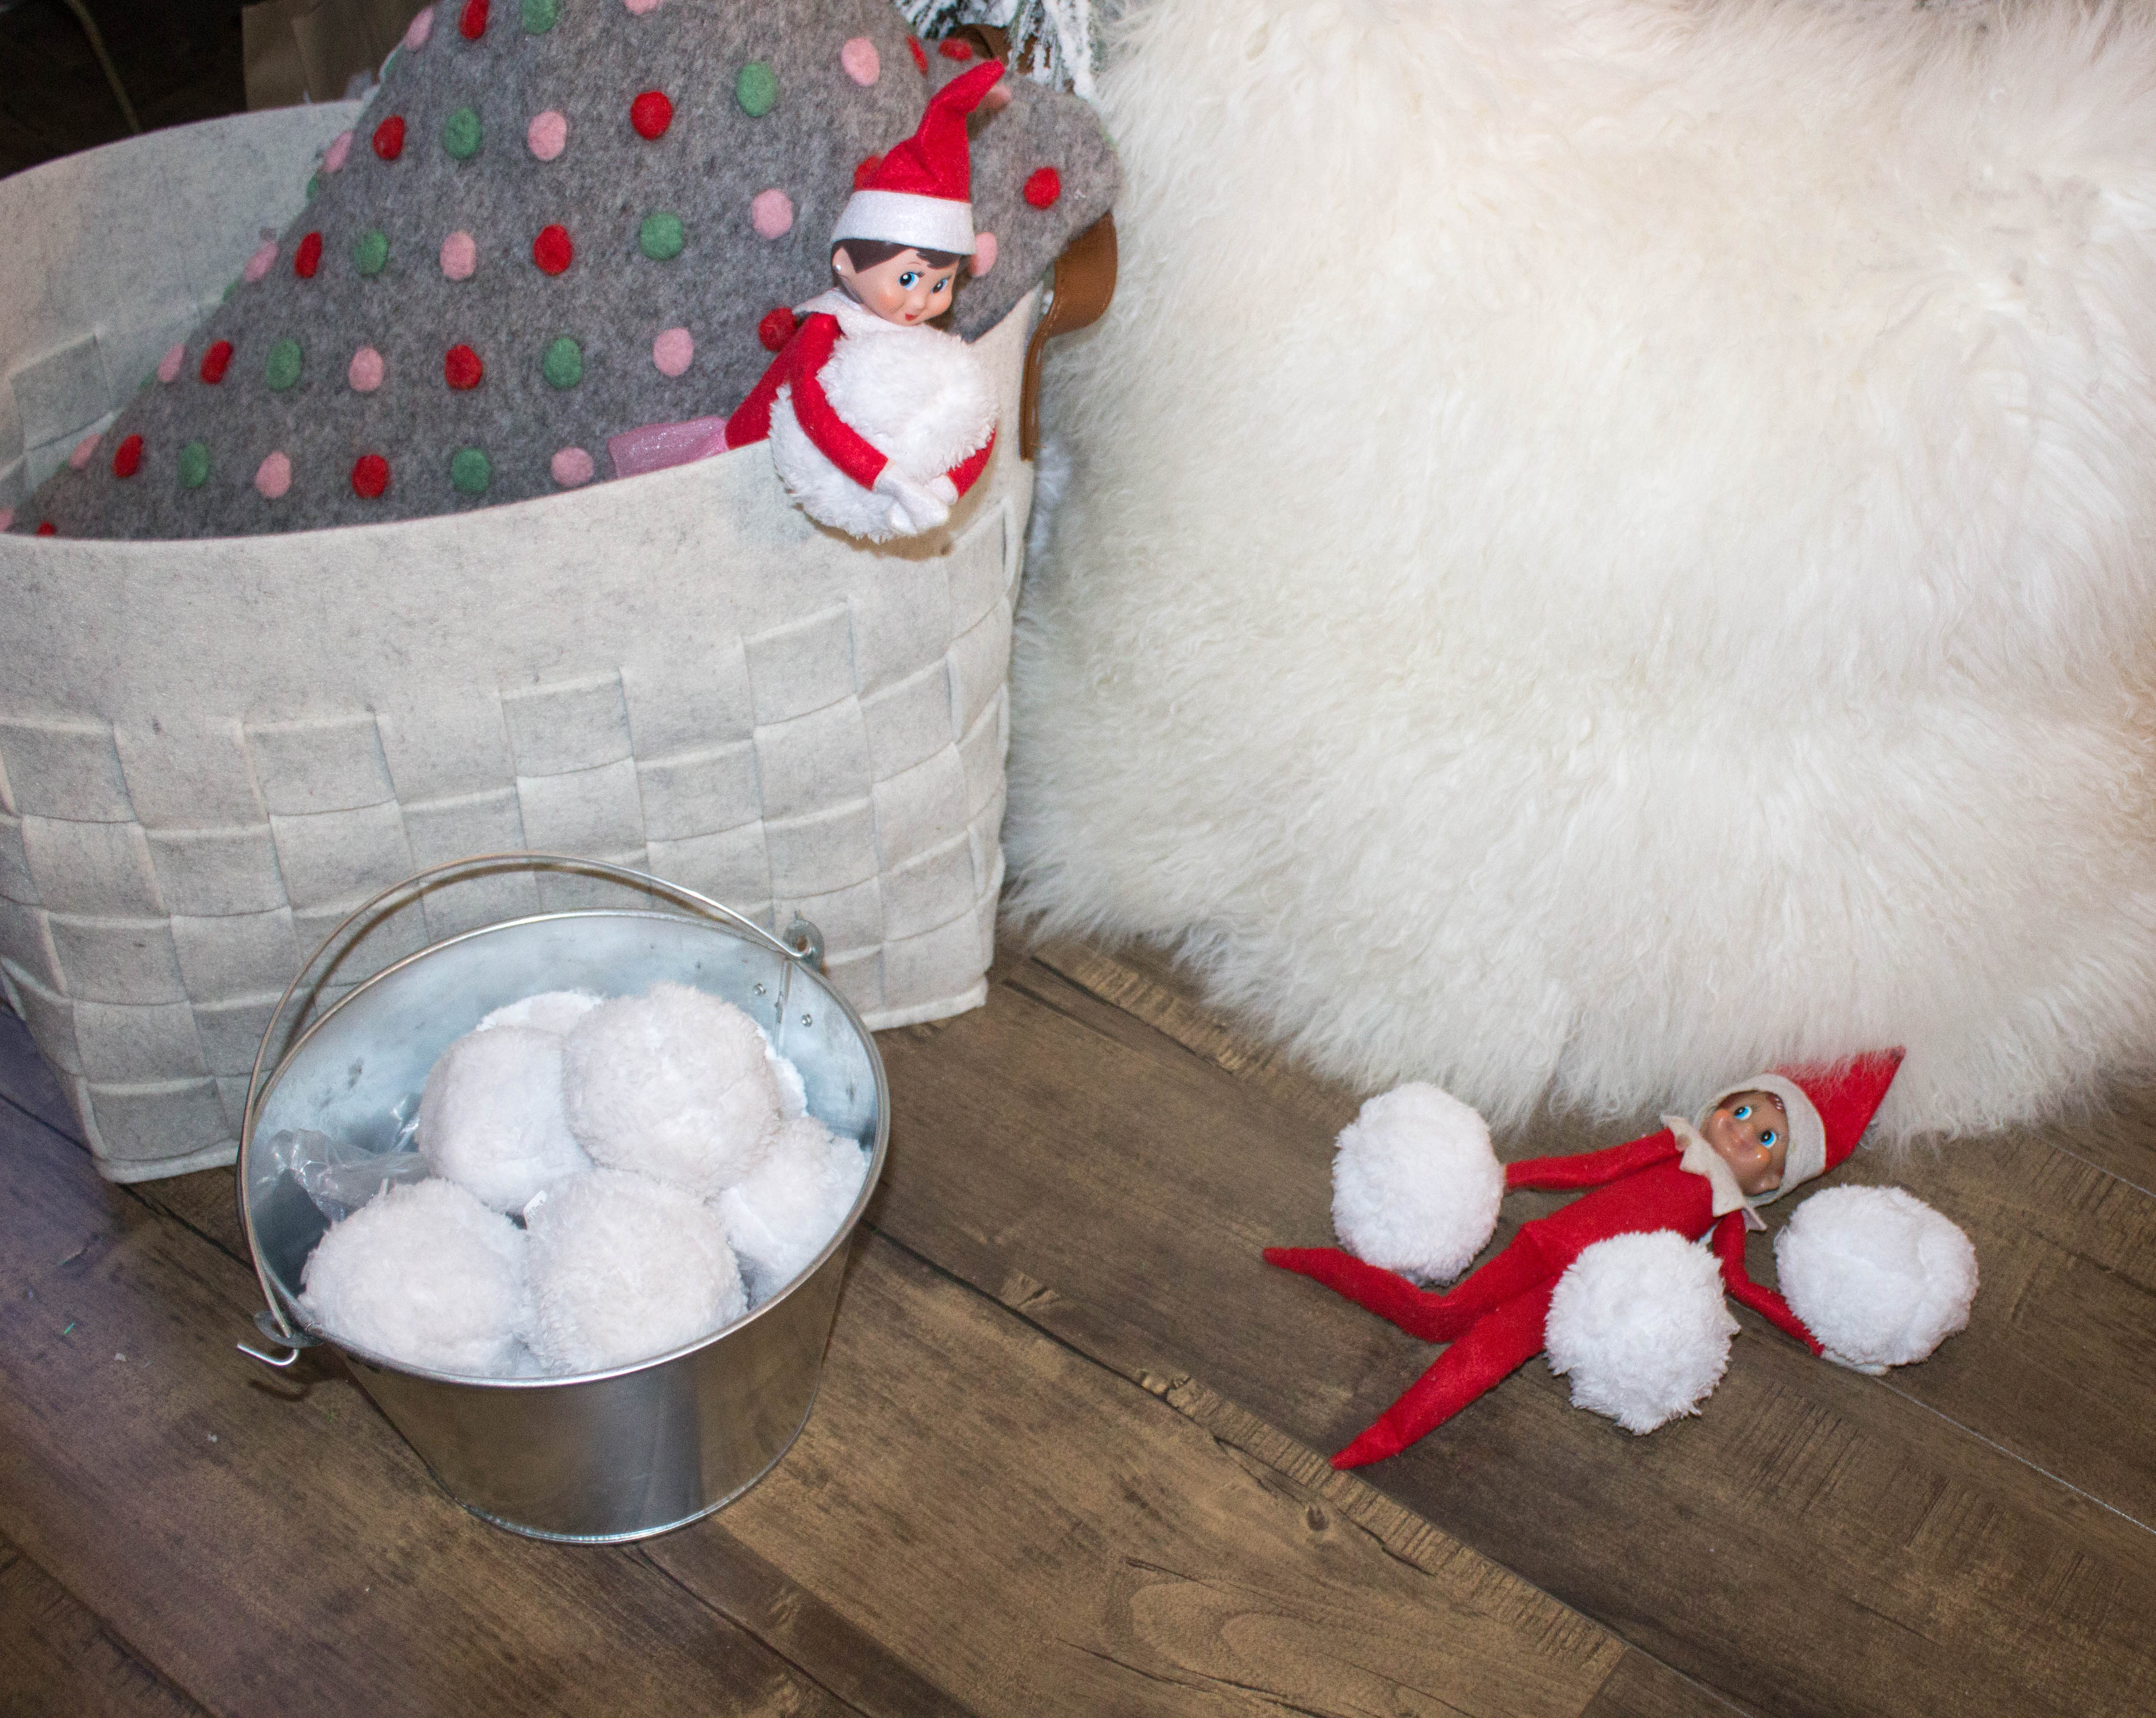 elf-on-the-shelf-ideas-and-elf-on-shelf-products-scenes-christmas-traditions-18